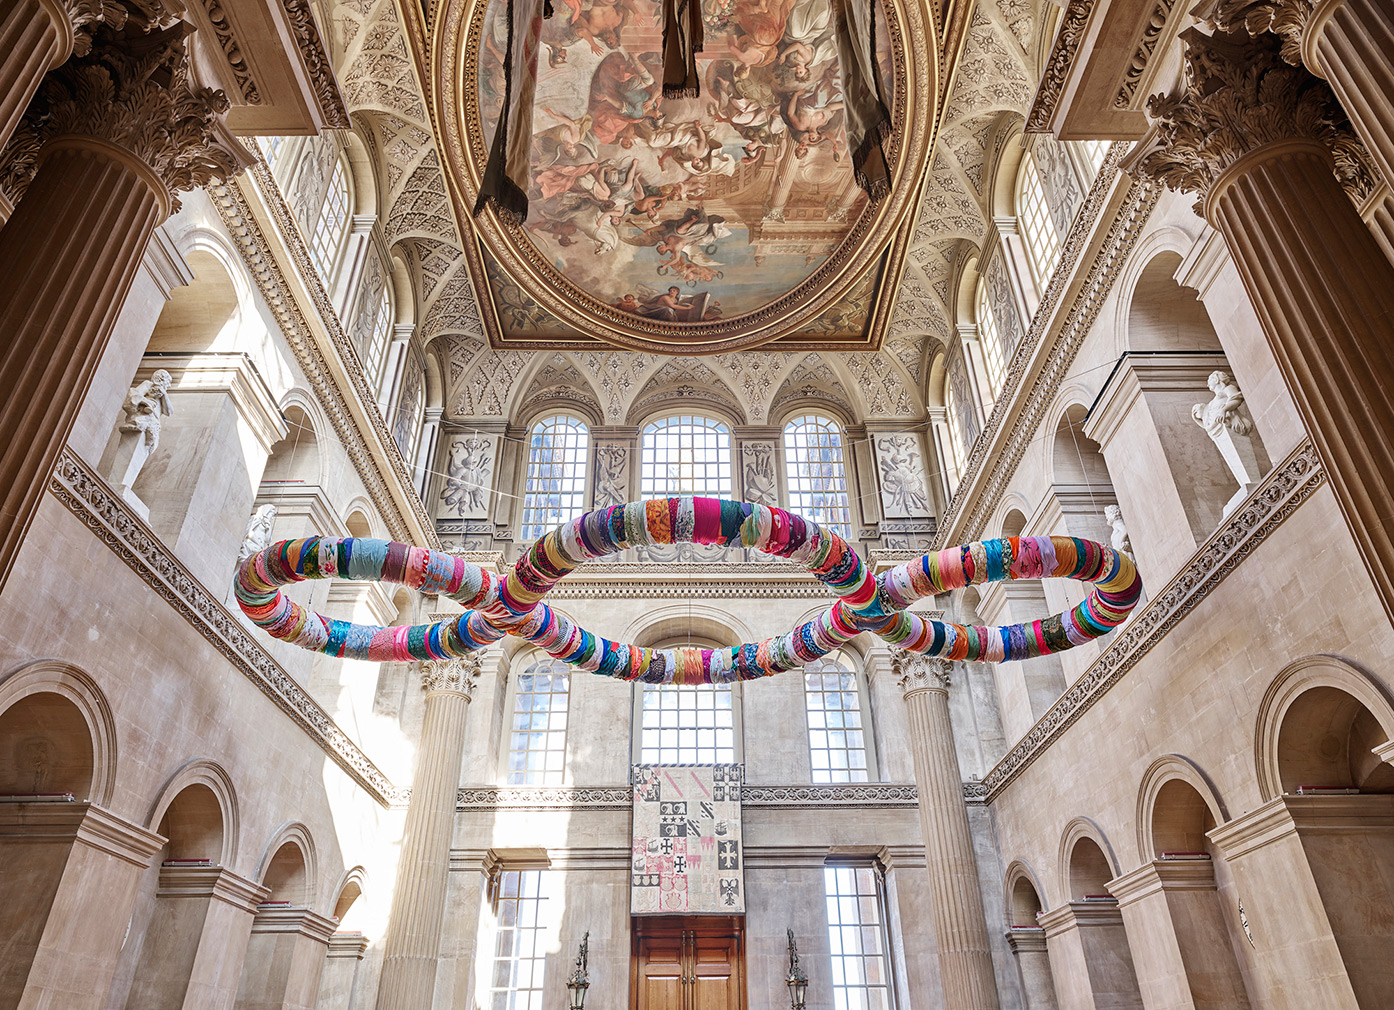 'Third Paradise' (2003-­‐2016) by Michelangelo Pistoletto. Photography: Tom Lindboe / courtesy:Blenheim Art Foundation